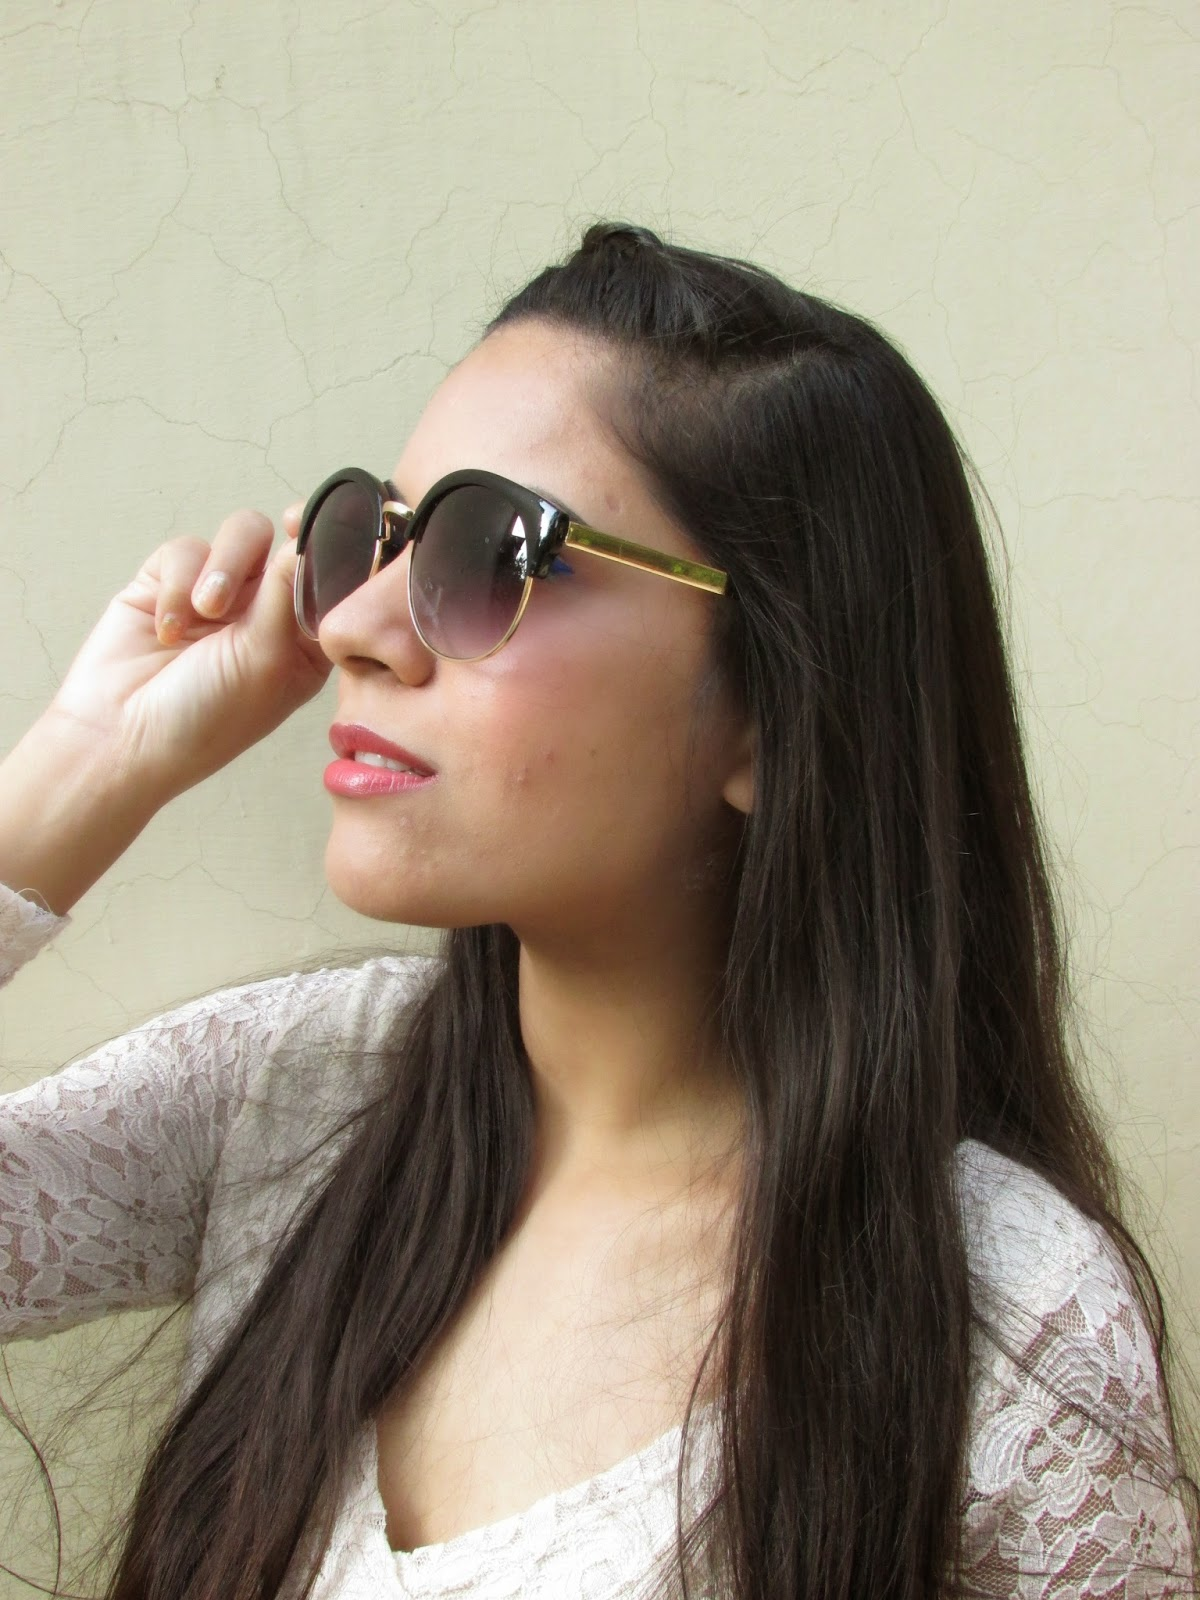 cheap sunglasses india, cheap vintage sunglasses, fashion, OASAP, Sunglasses, vintage round sunglasses, oasap review, oasap online , oasap sunglasses, oasap website review, oasap fashion , oasap vintage sunglasses,vintage sunglasses,indian dahion bloggger